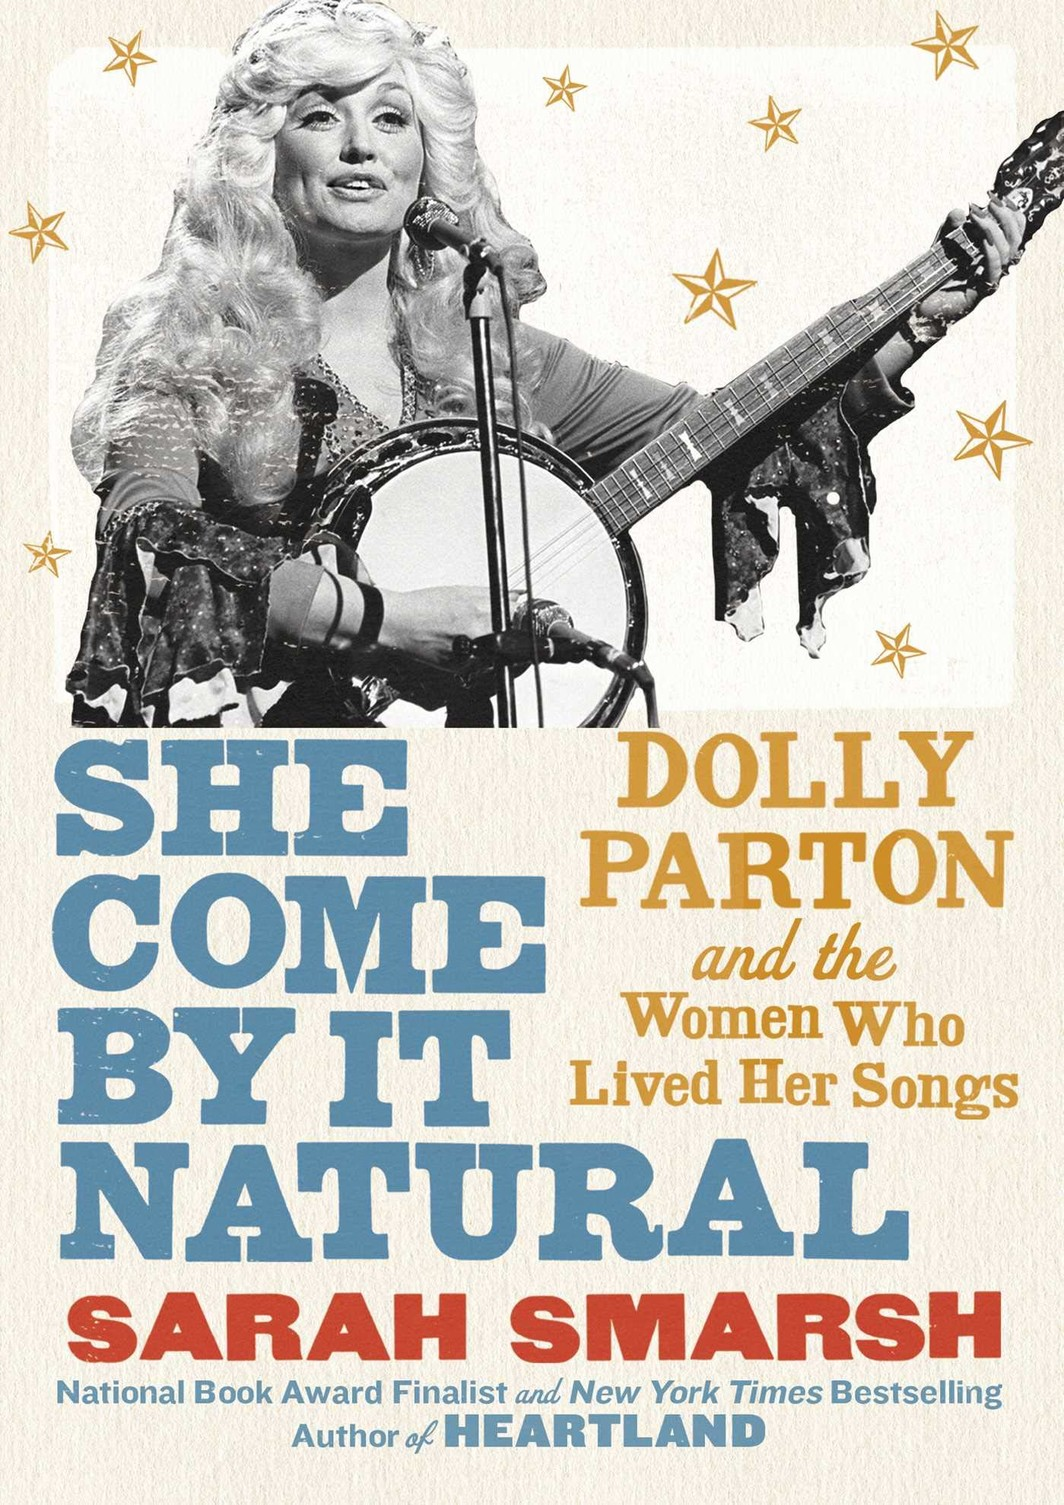 The cover of She Come By It Natural: Dolly Parton and the Women Who Lived Her Songs